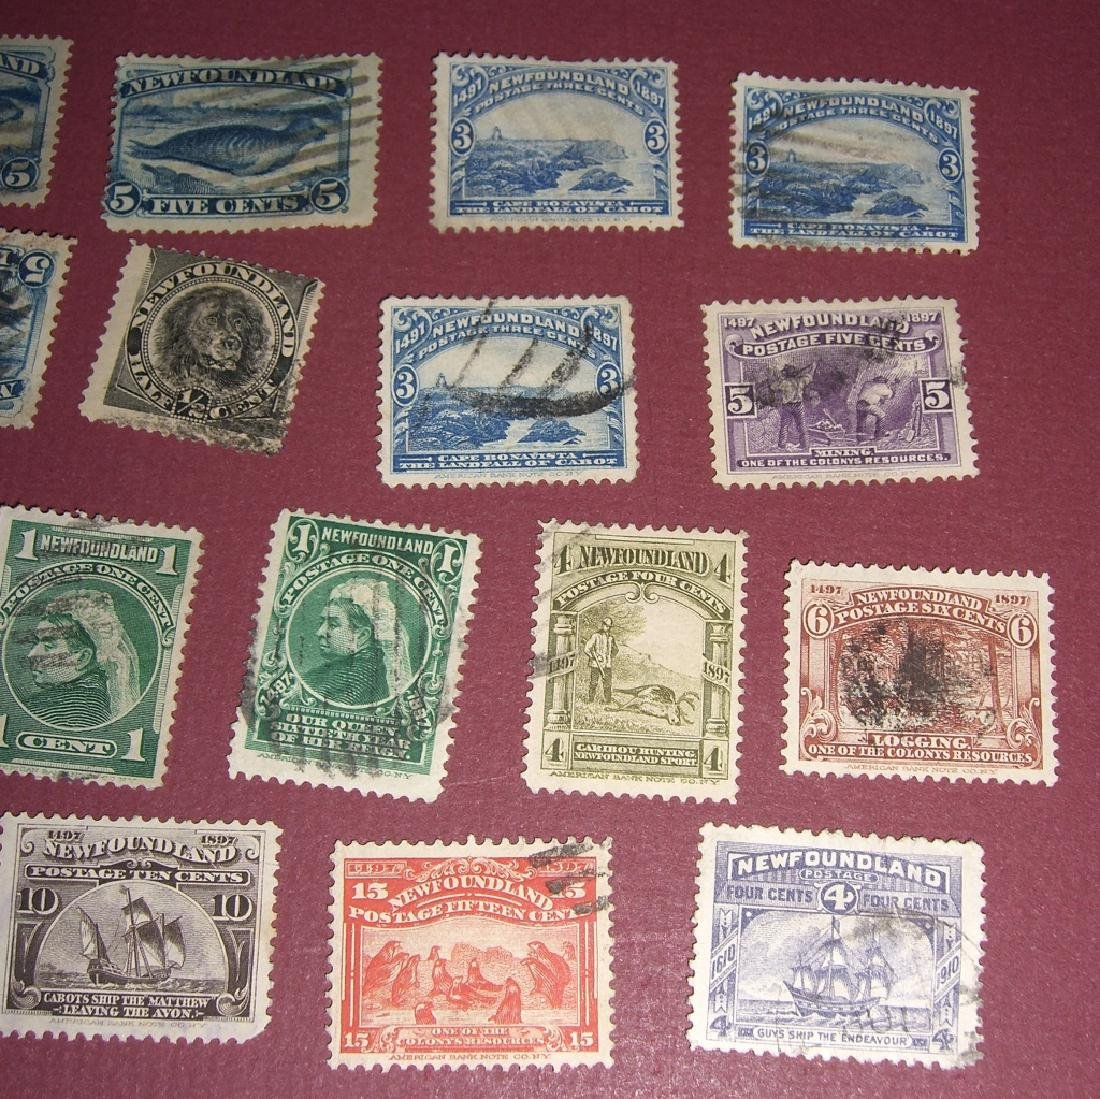 Canada 34 New Foundland stamps - 2